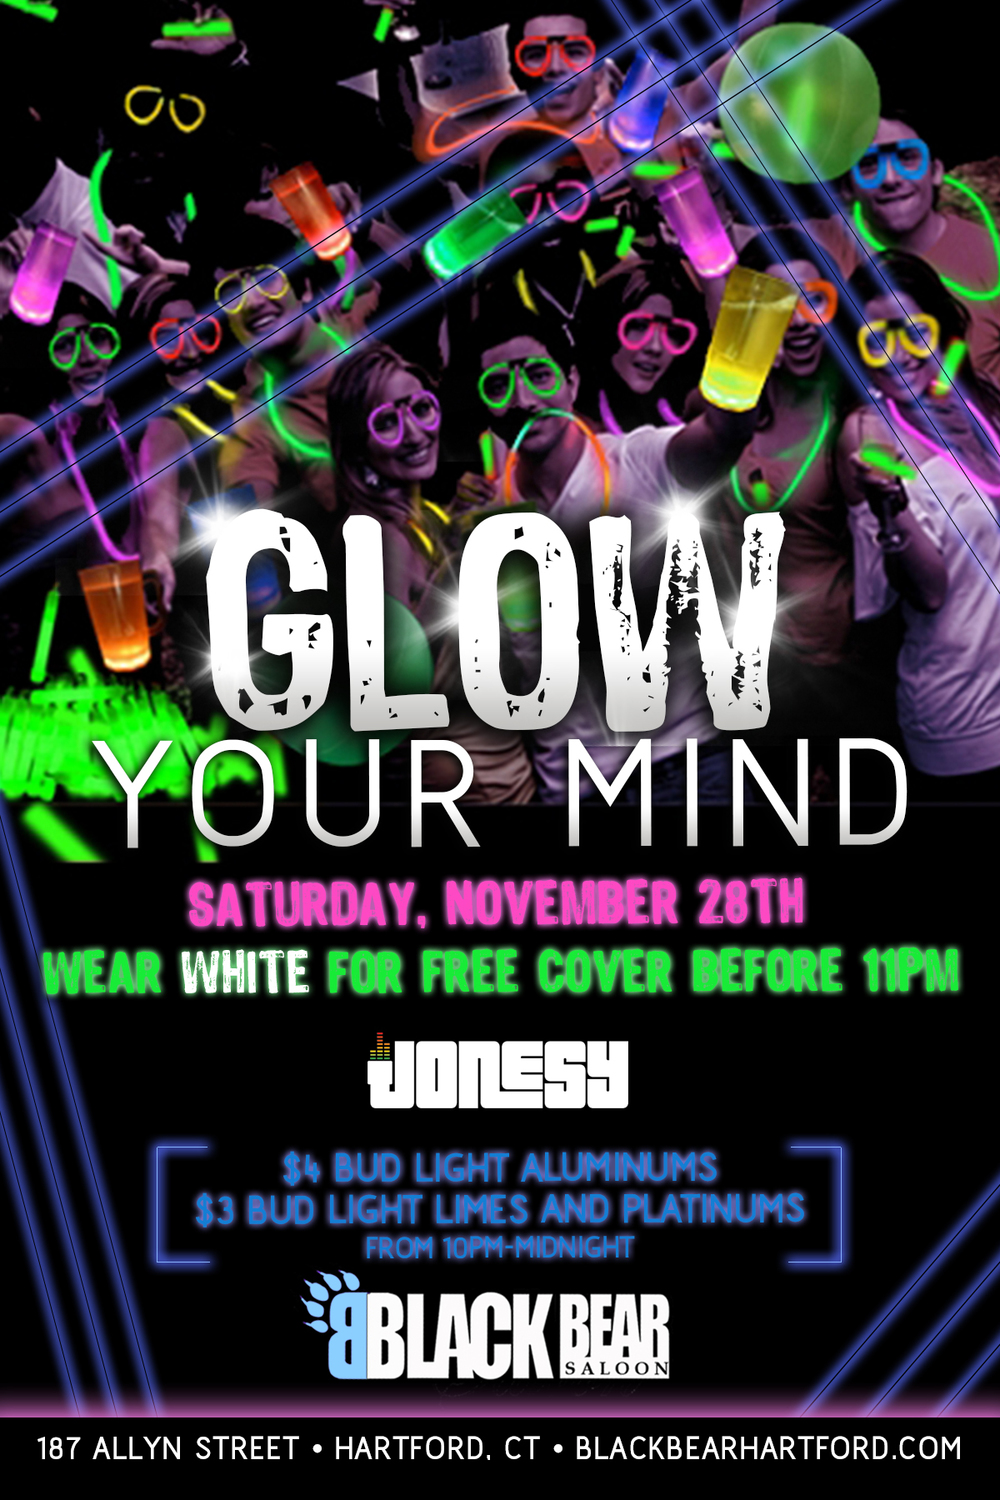 SATURDAY NOV. 28TH JOIN US AT BLACK BEAR FOR THE MONTHLY GLOW PARTY.  MUSIC BY JONESY STARTS AT 9:30PM.  WEAR WHITE FOR FREE COVER BEFORE 11PM.  $4 BUD LIGHT ALUMINUMS, $3 BUD LIGHT LIMES AND PLATINUMS FROM 10PM - MIDNIGHT.